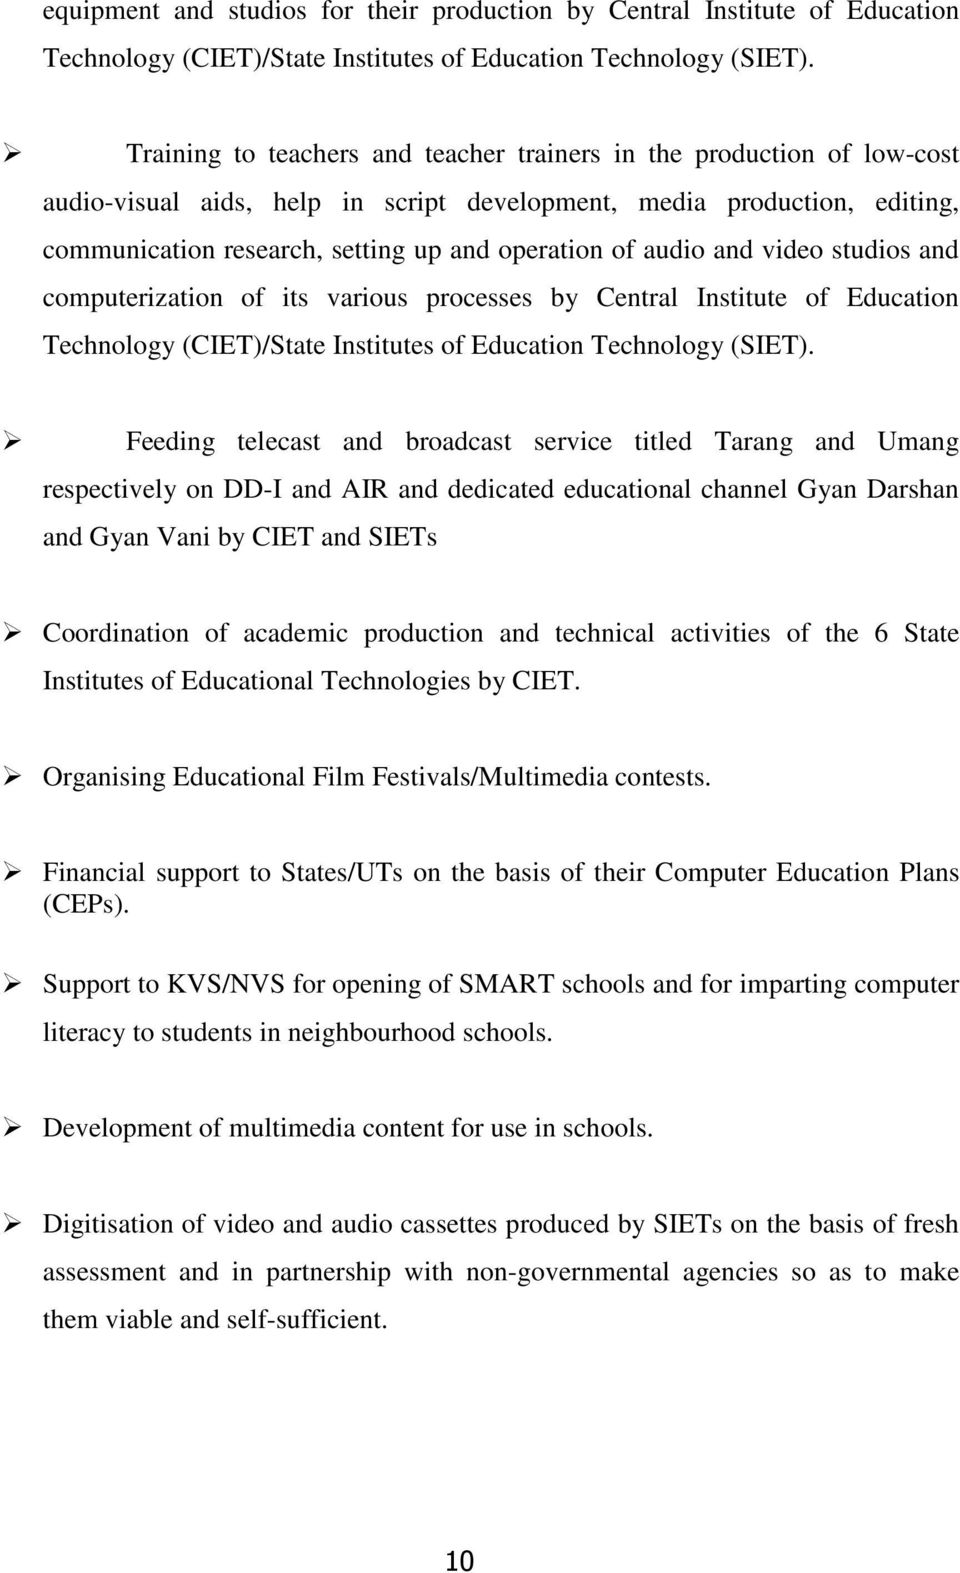 audio and video studios and computerization of its various processes by Central Institute of Education Technology (CIET)/State Institutes of Education Technology (SIET).